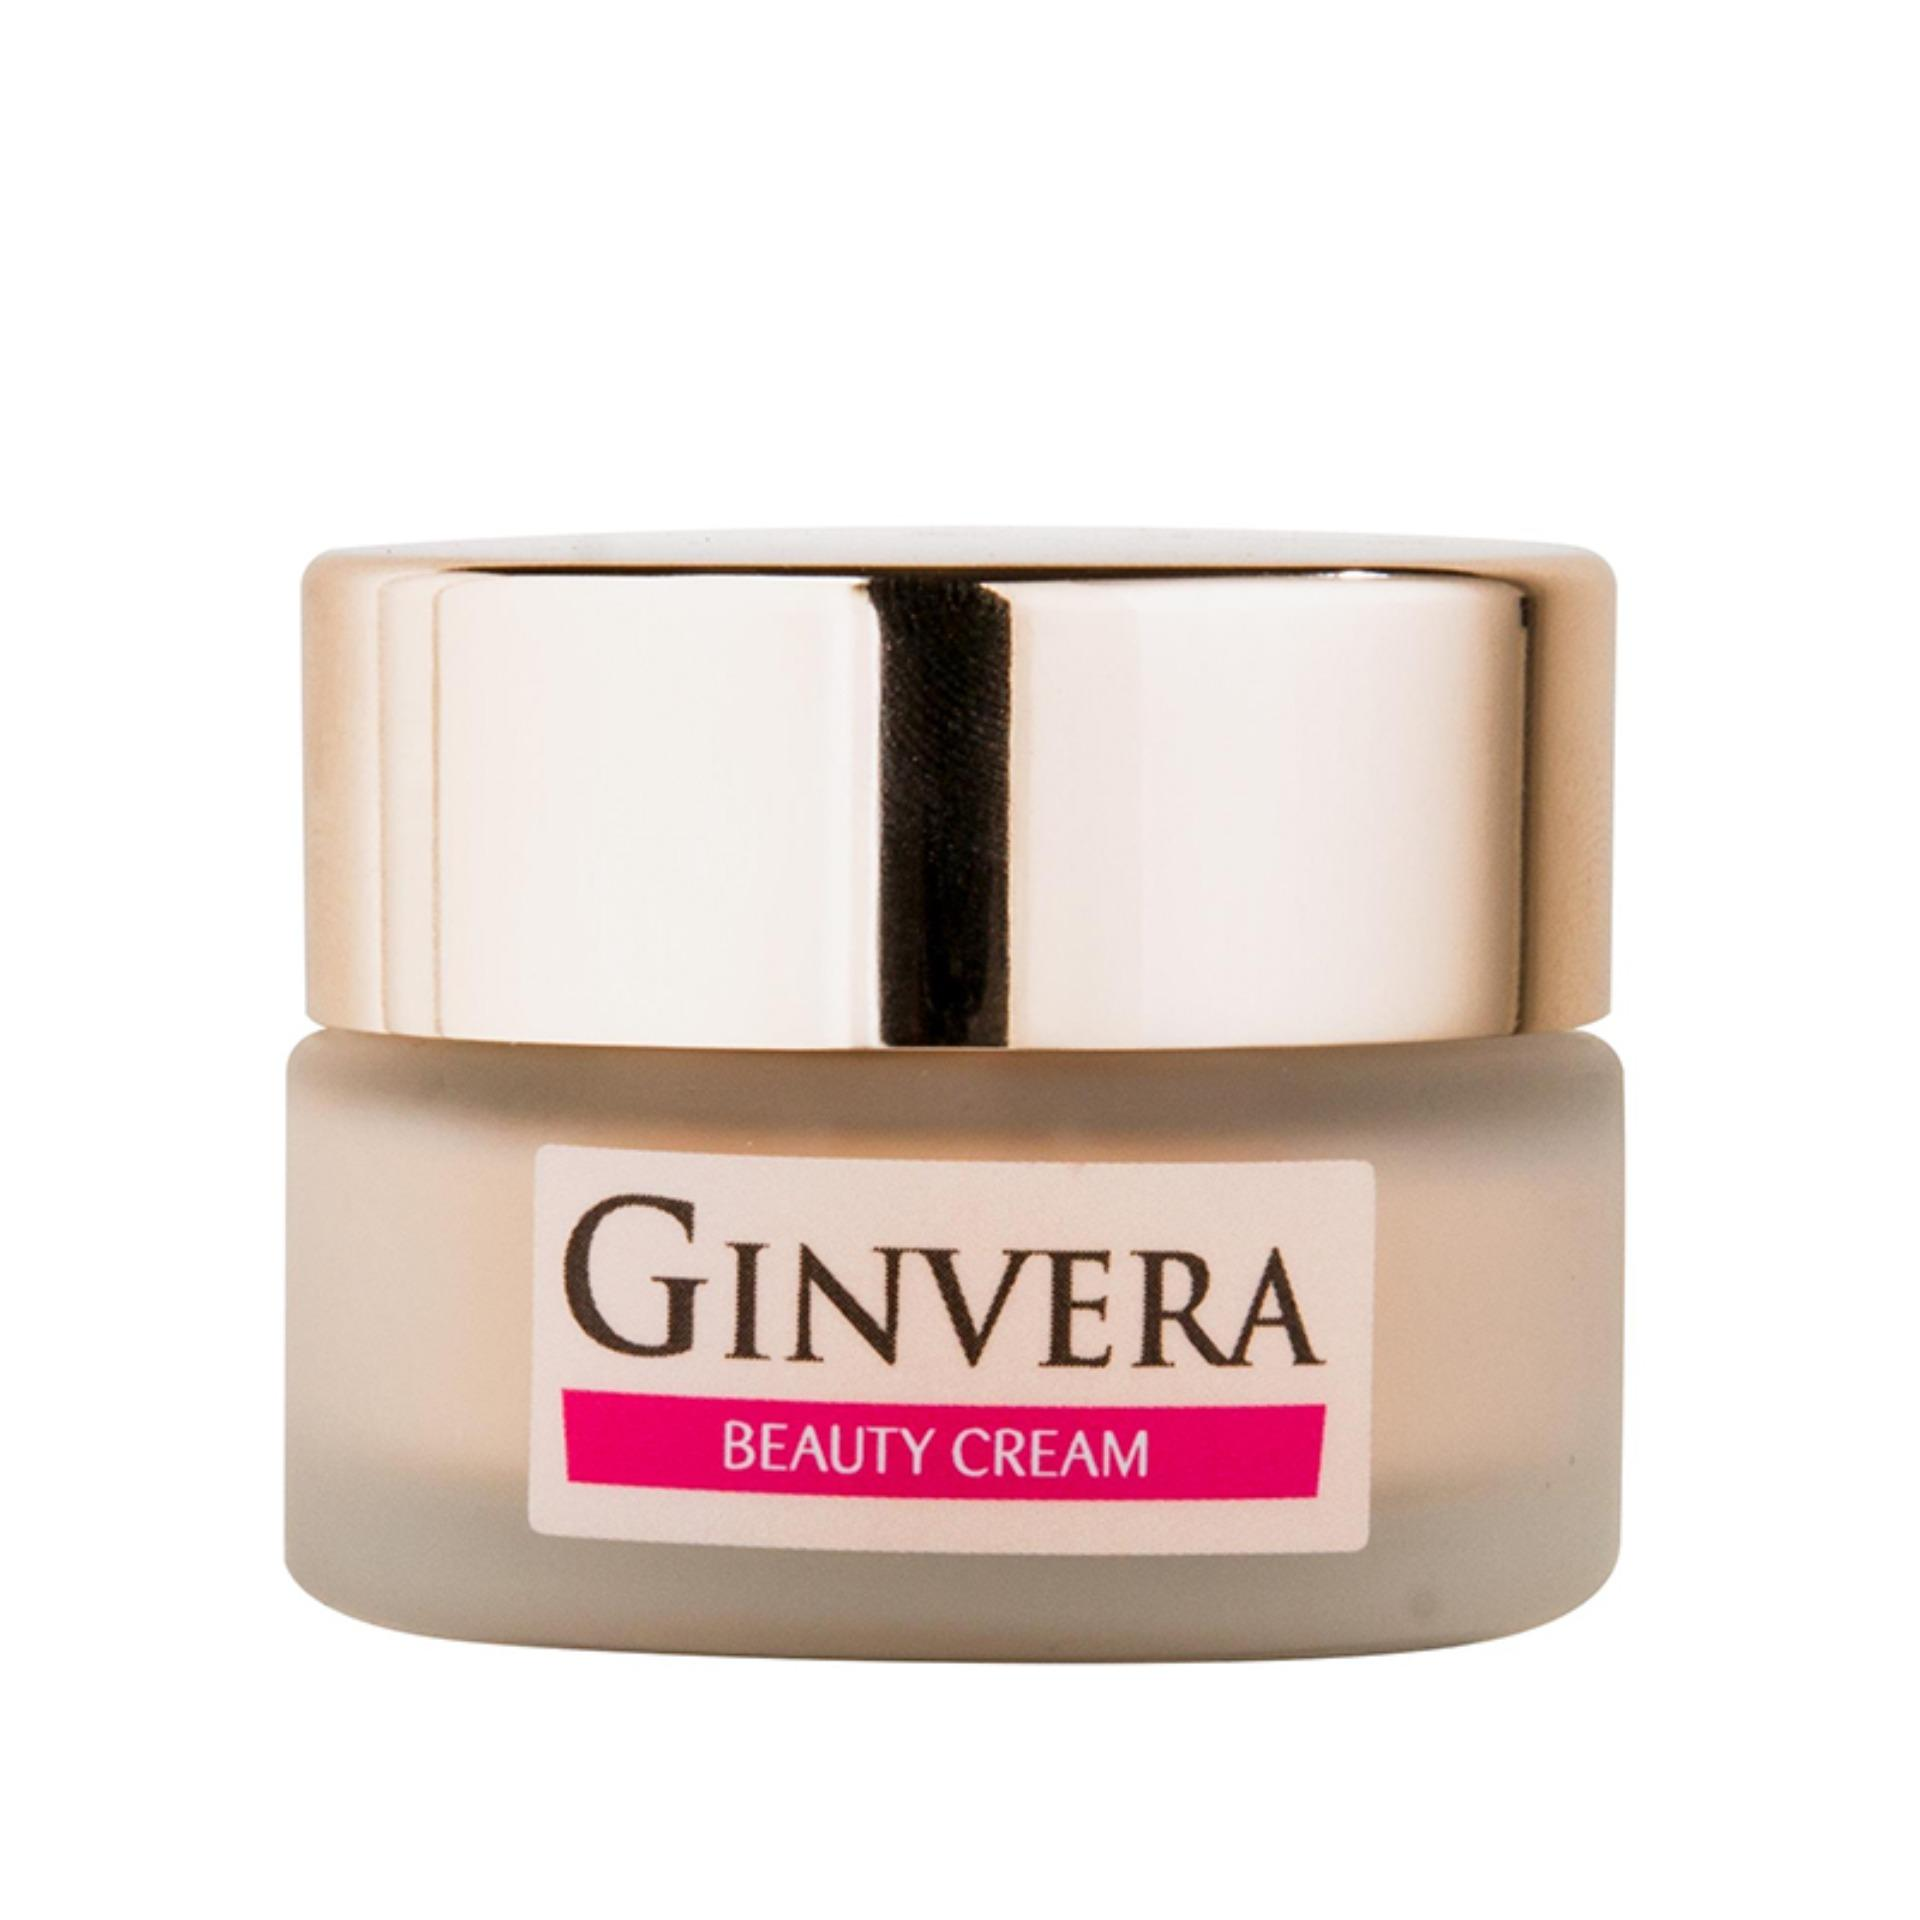 Ginvera Korean Secrets Hydra Soft Beauty Cream 16g